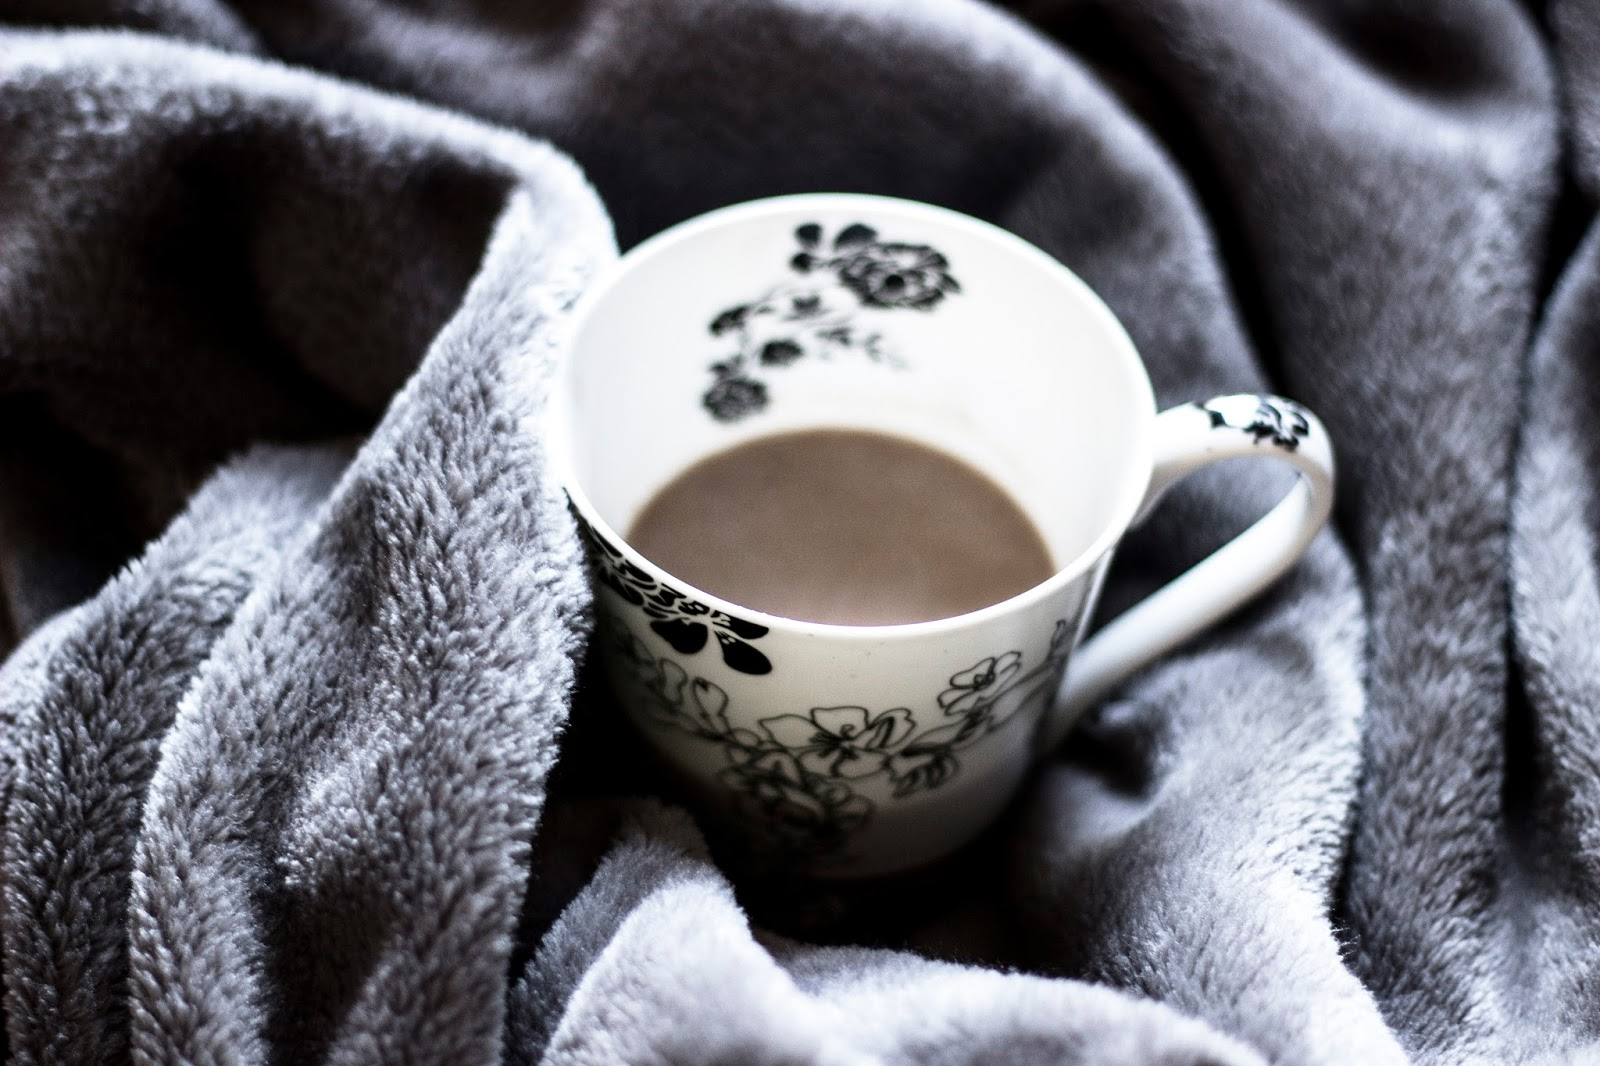 http://www.thewhimsicalwildling.com/2016/10/healthy-hot-chocolate.html